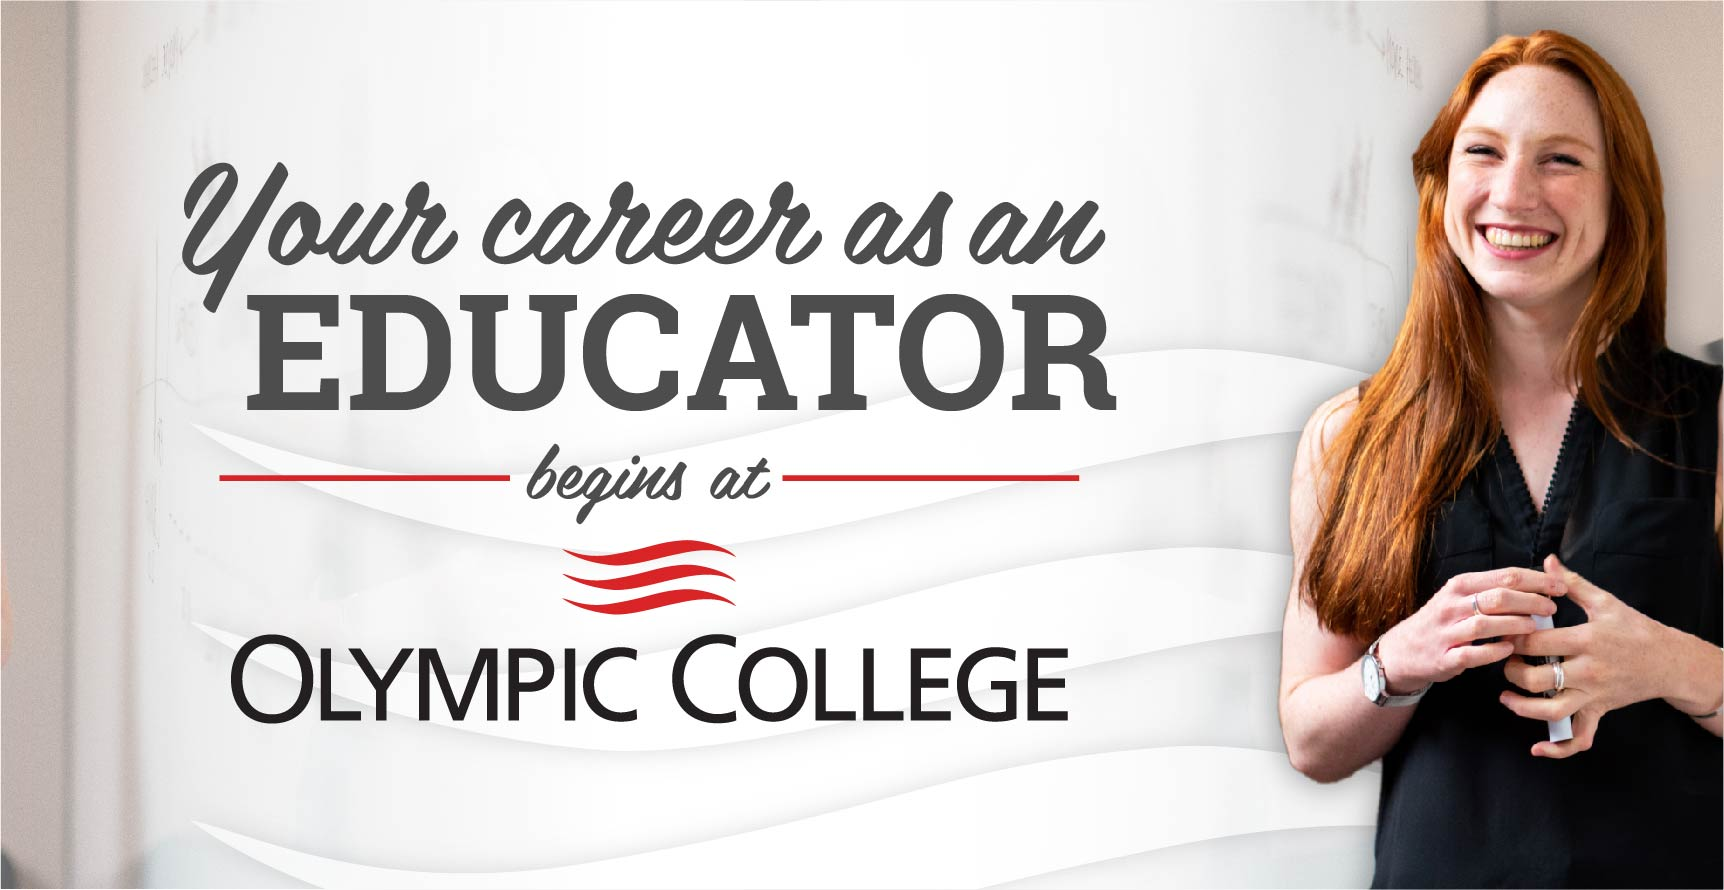 Your career as an educator begins at Olympic College